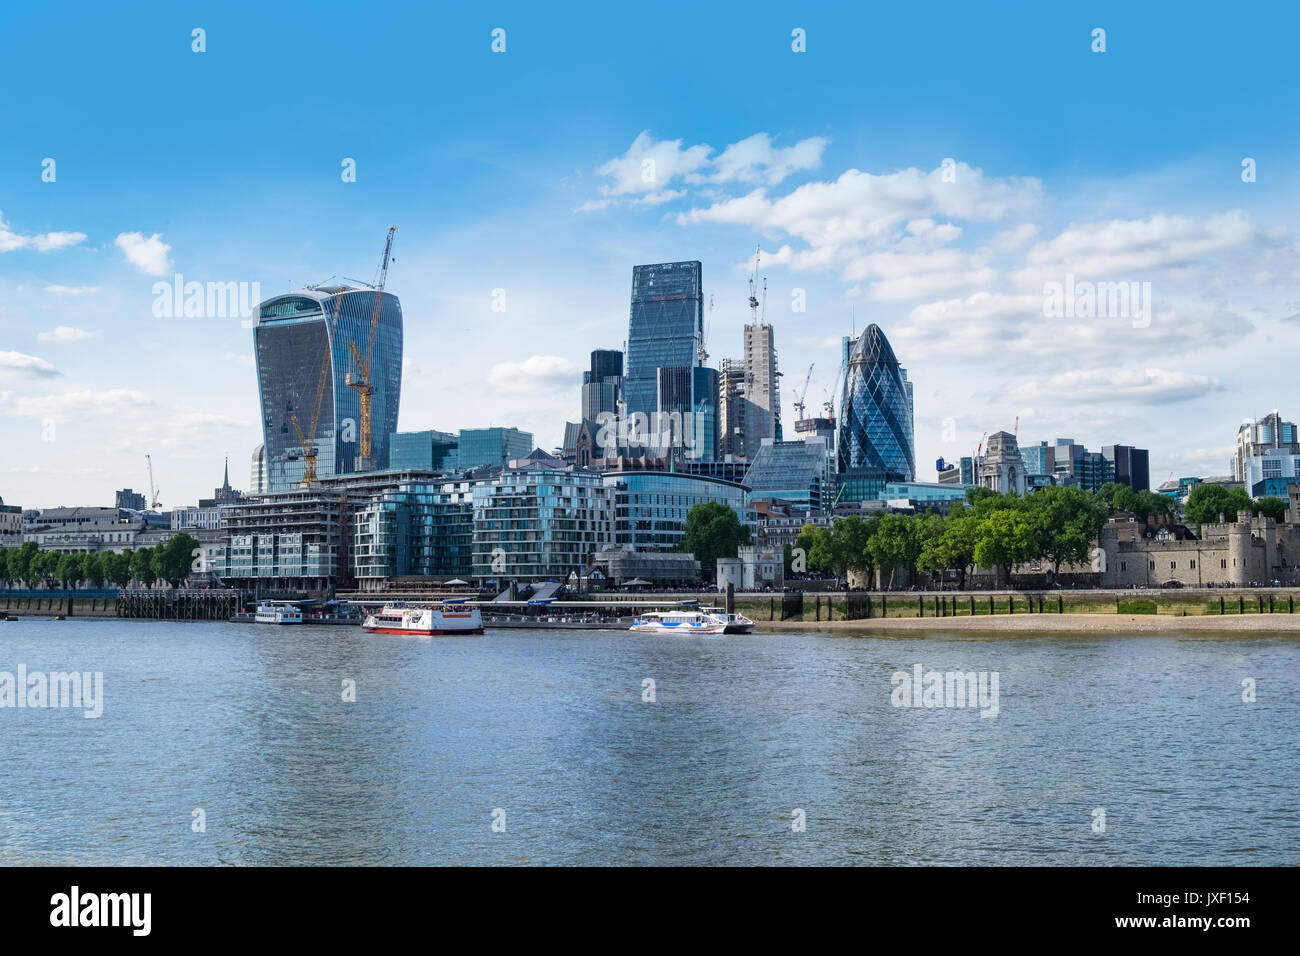 London, UK 21st May 2017. City of London financial district seen across Thames, from Tower Bridge. Stock Photo